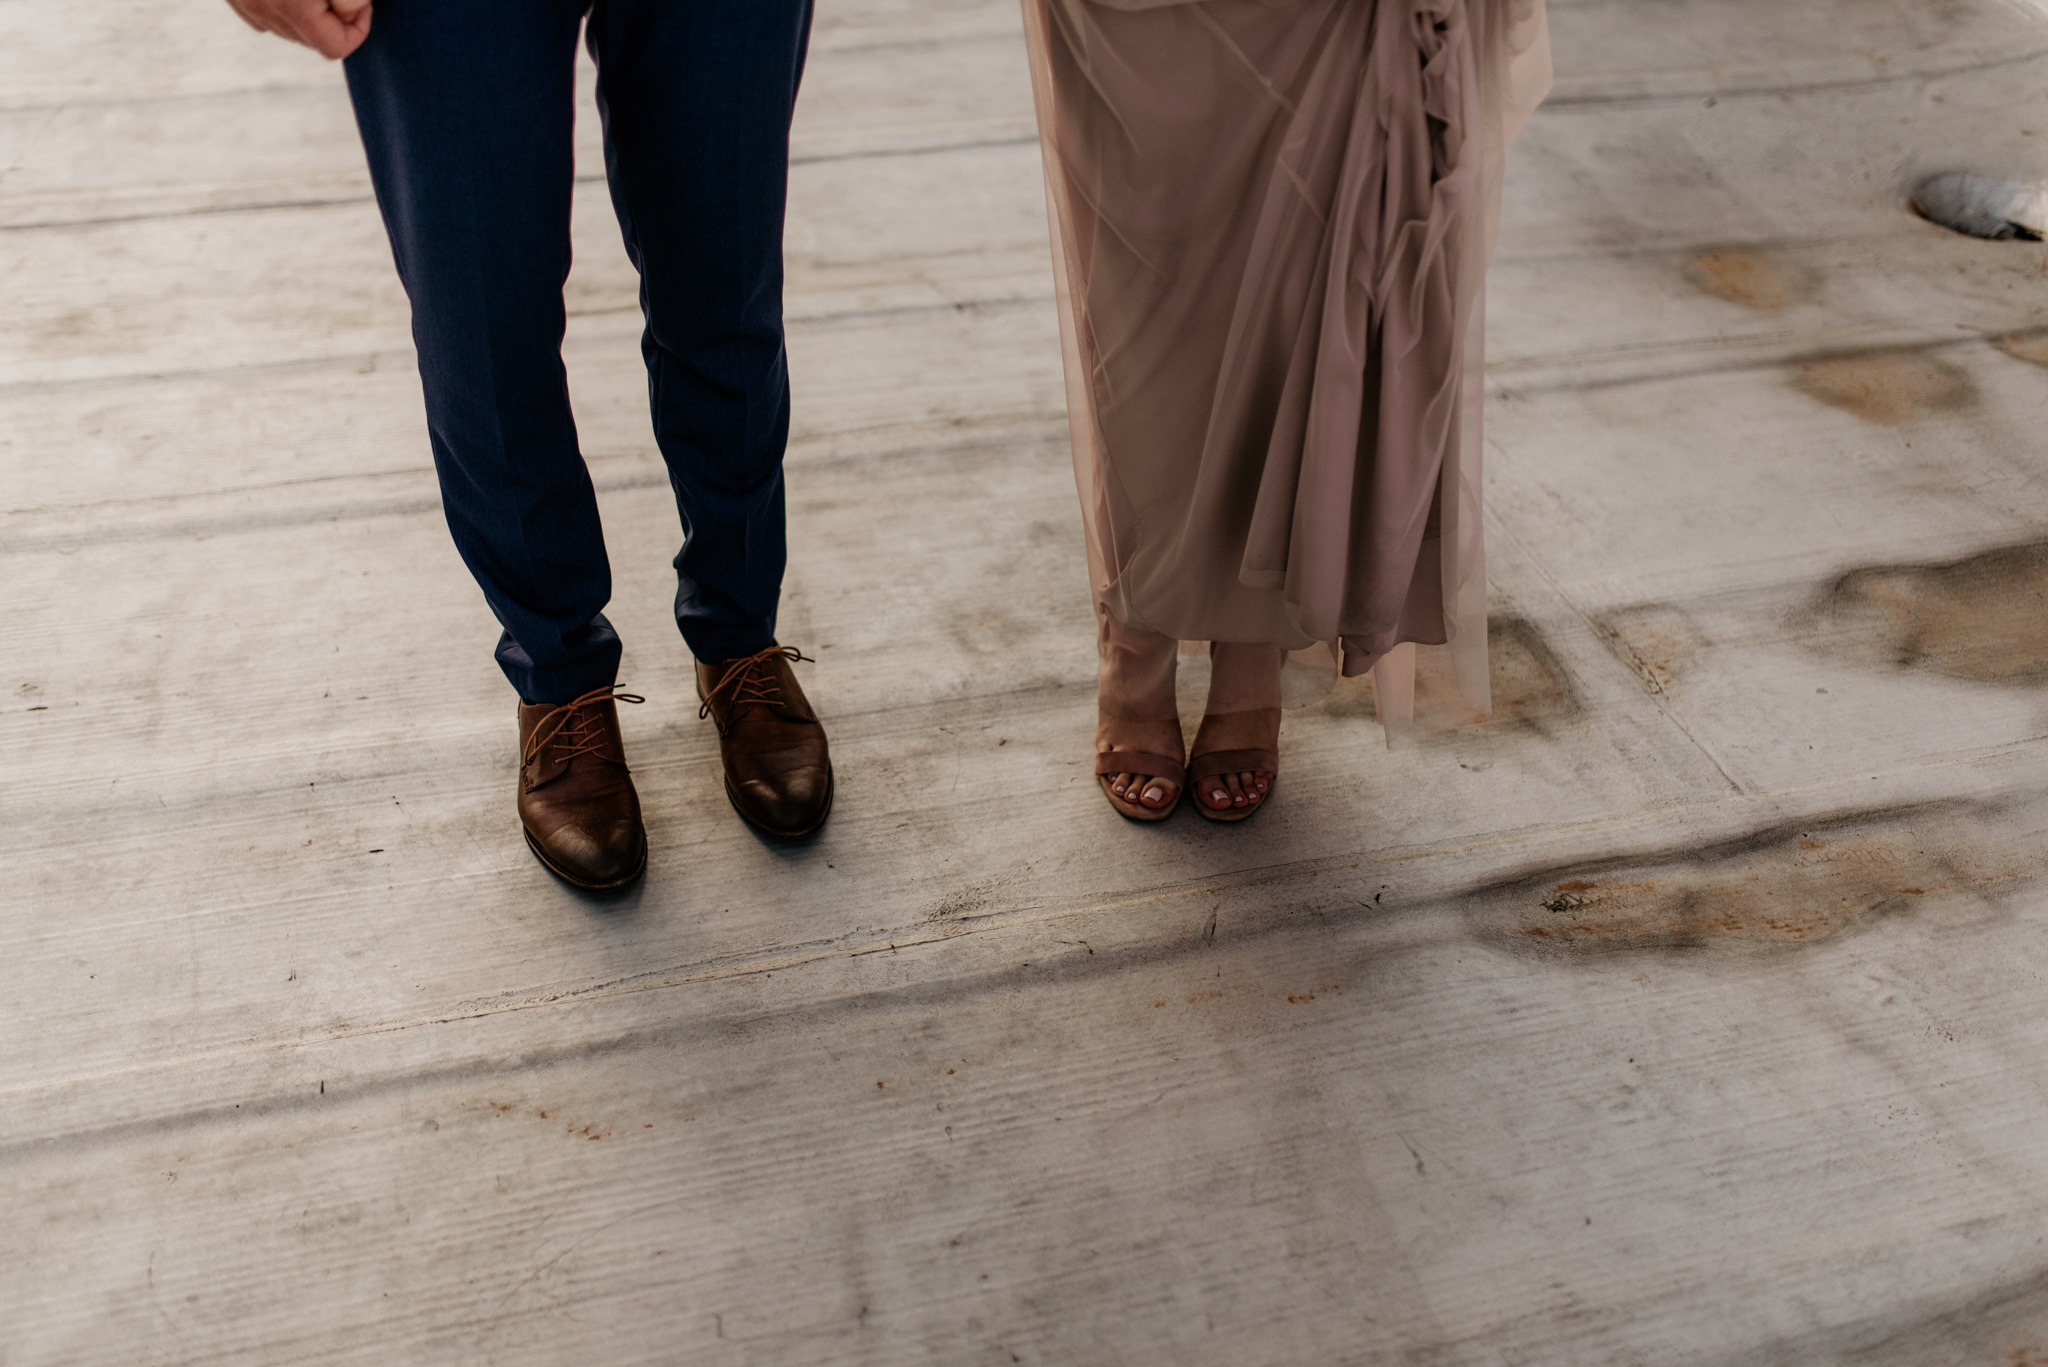 Bride and groom stand together showing off their wedding shoes